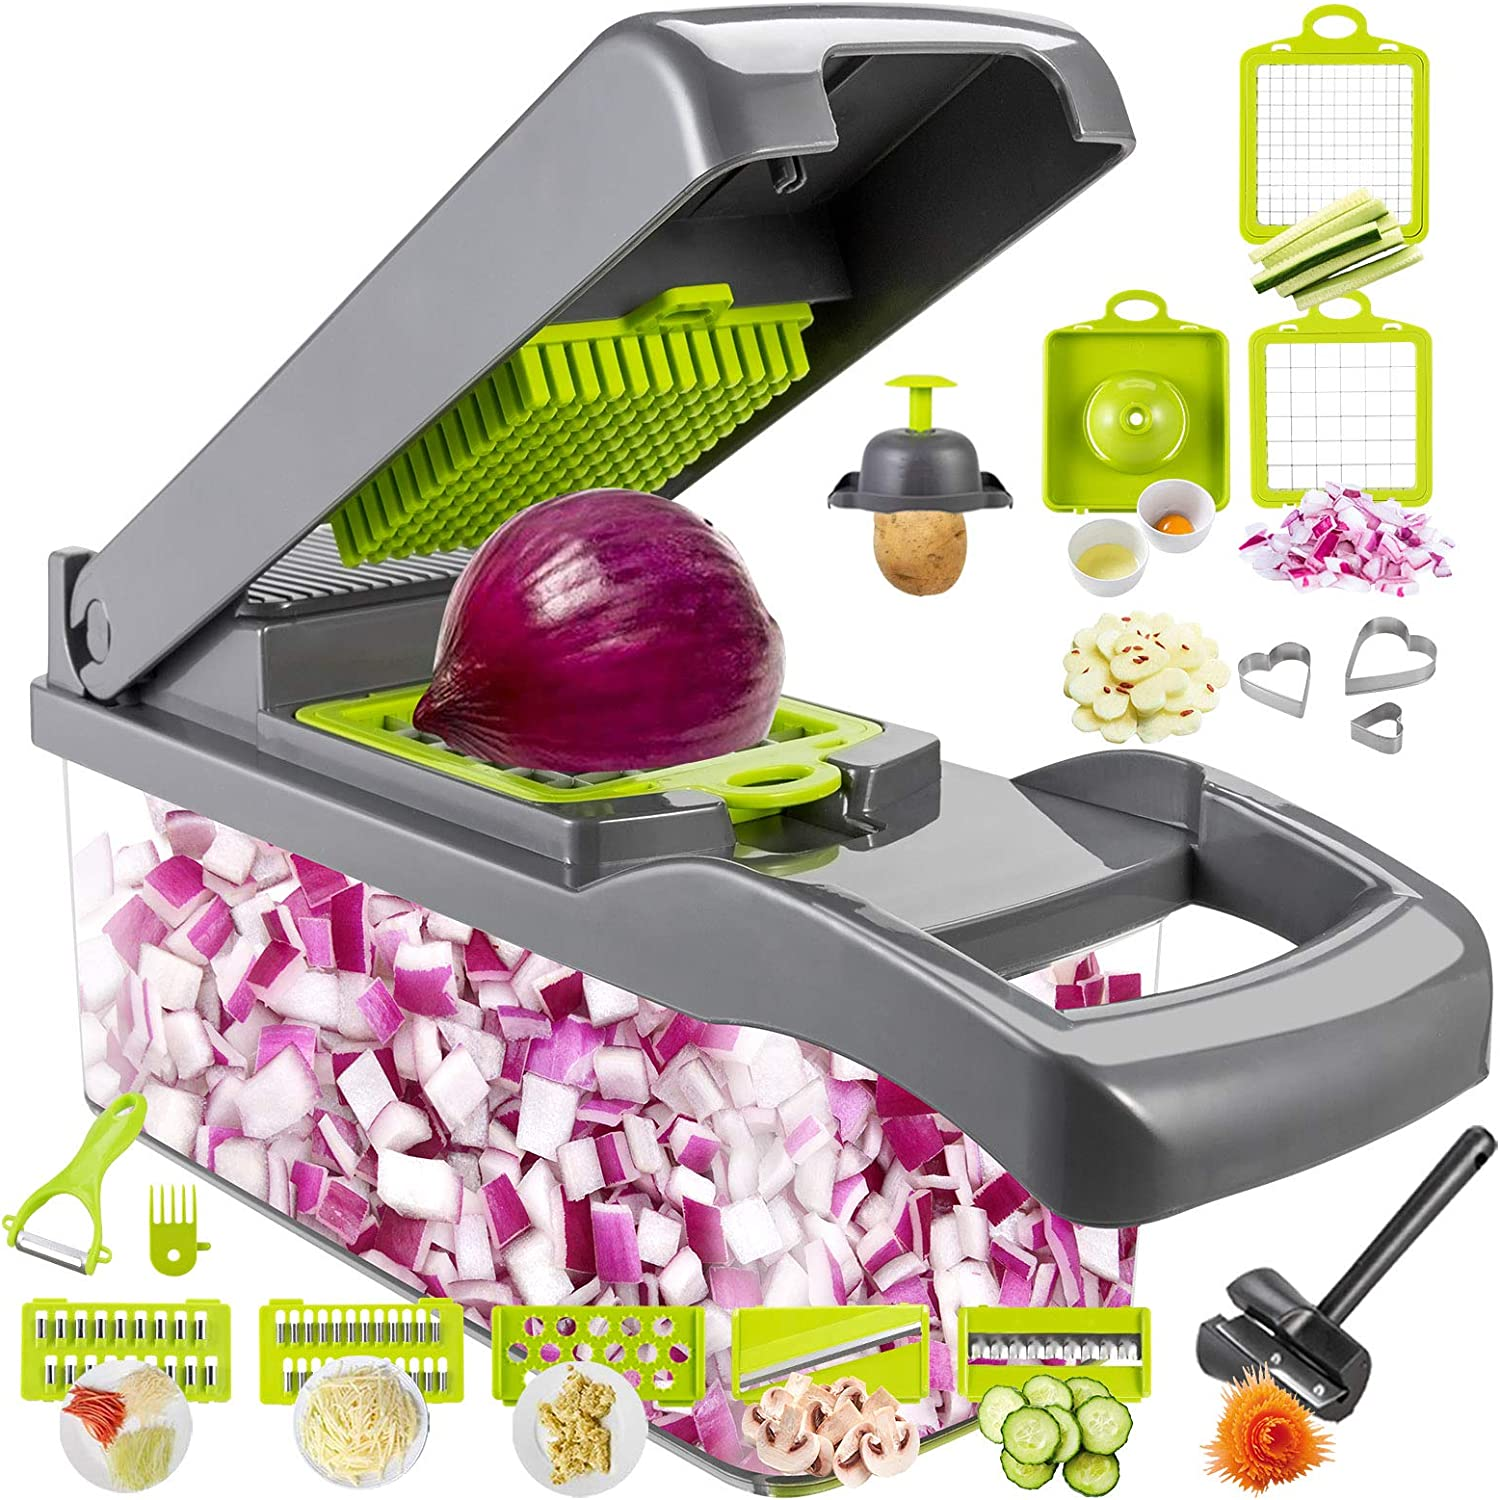 Cyhawcerv 20 PCS Vegetable Chopper Onion Chopper Dicer - DIY Fun Food Tools Cutter Potato Slicer Veggie Chopper Mandoline Slicer with Container Kitchen Gadgets for Fruits,Vegetables and Salad, Grey